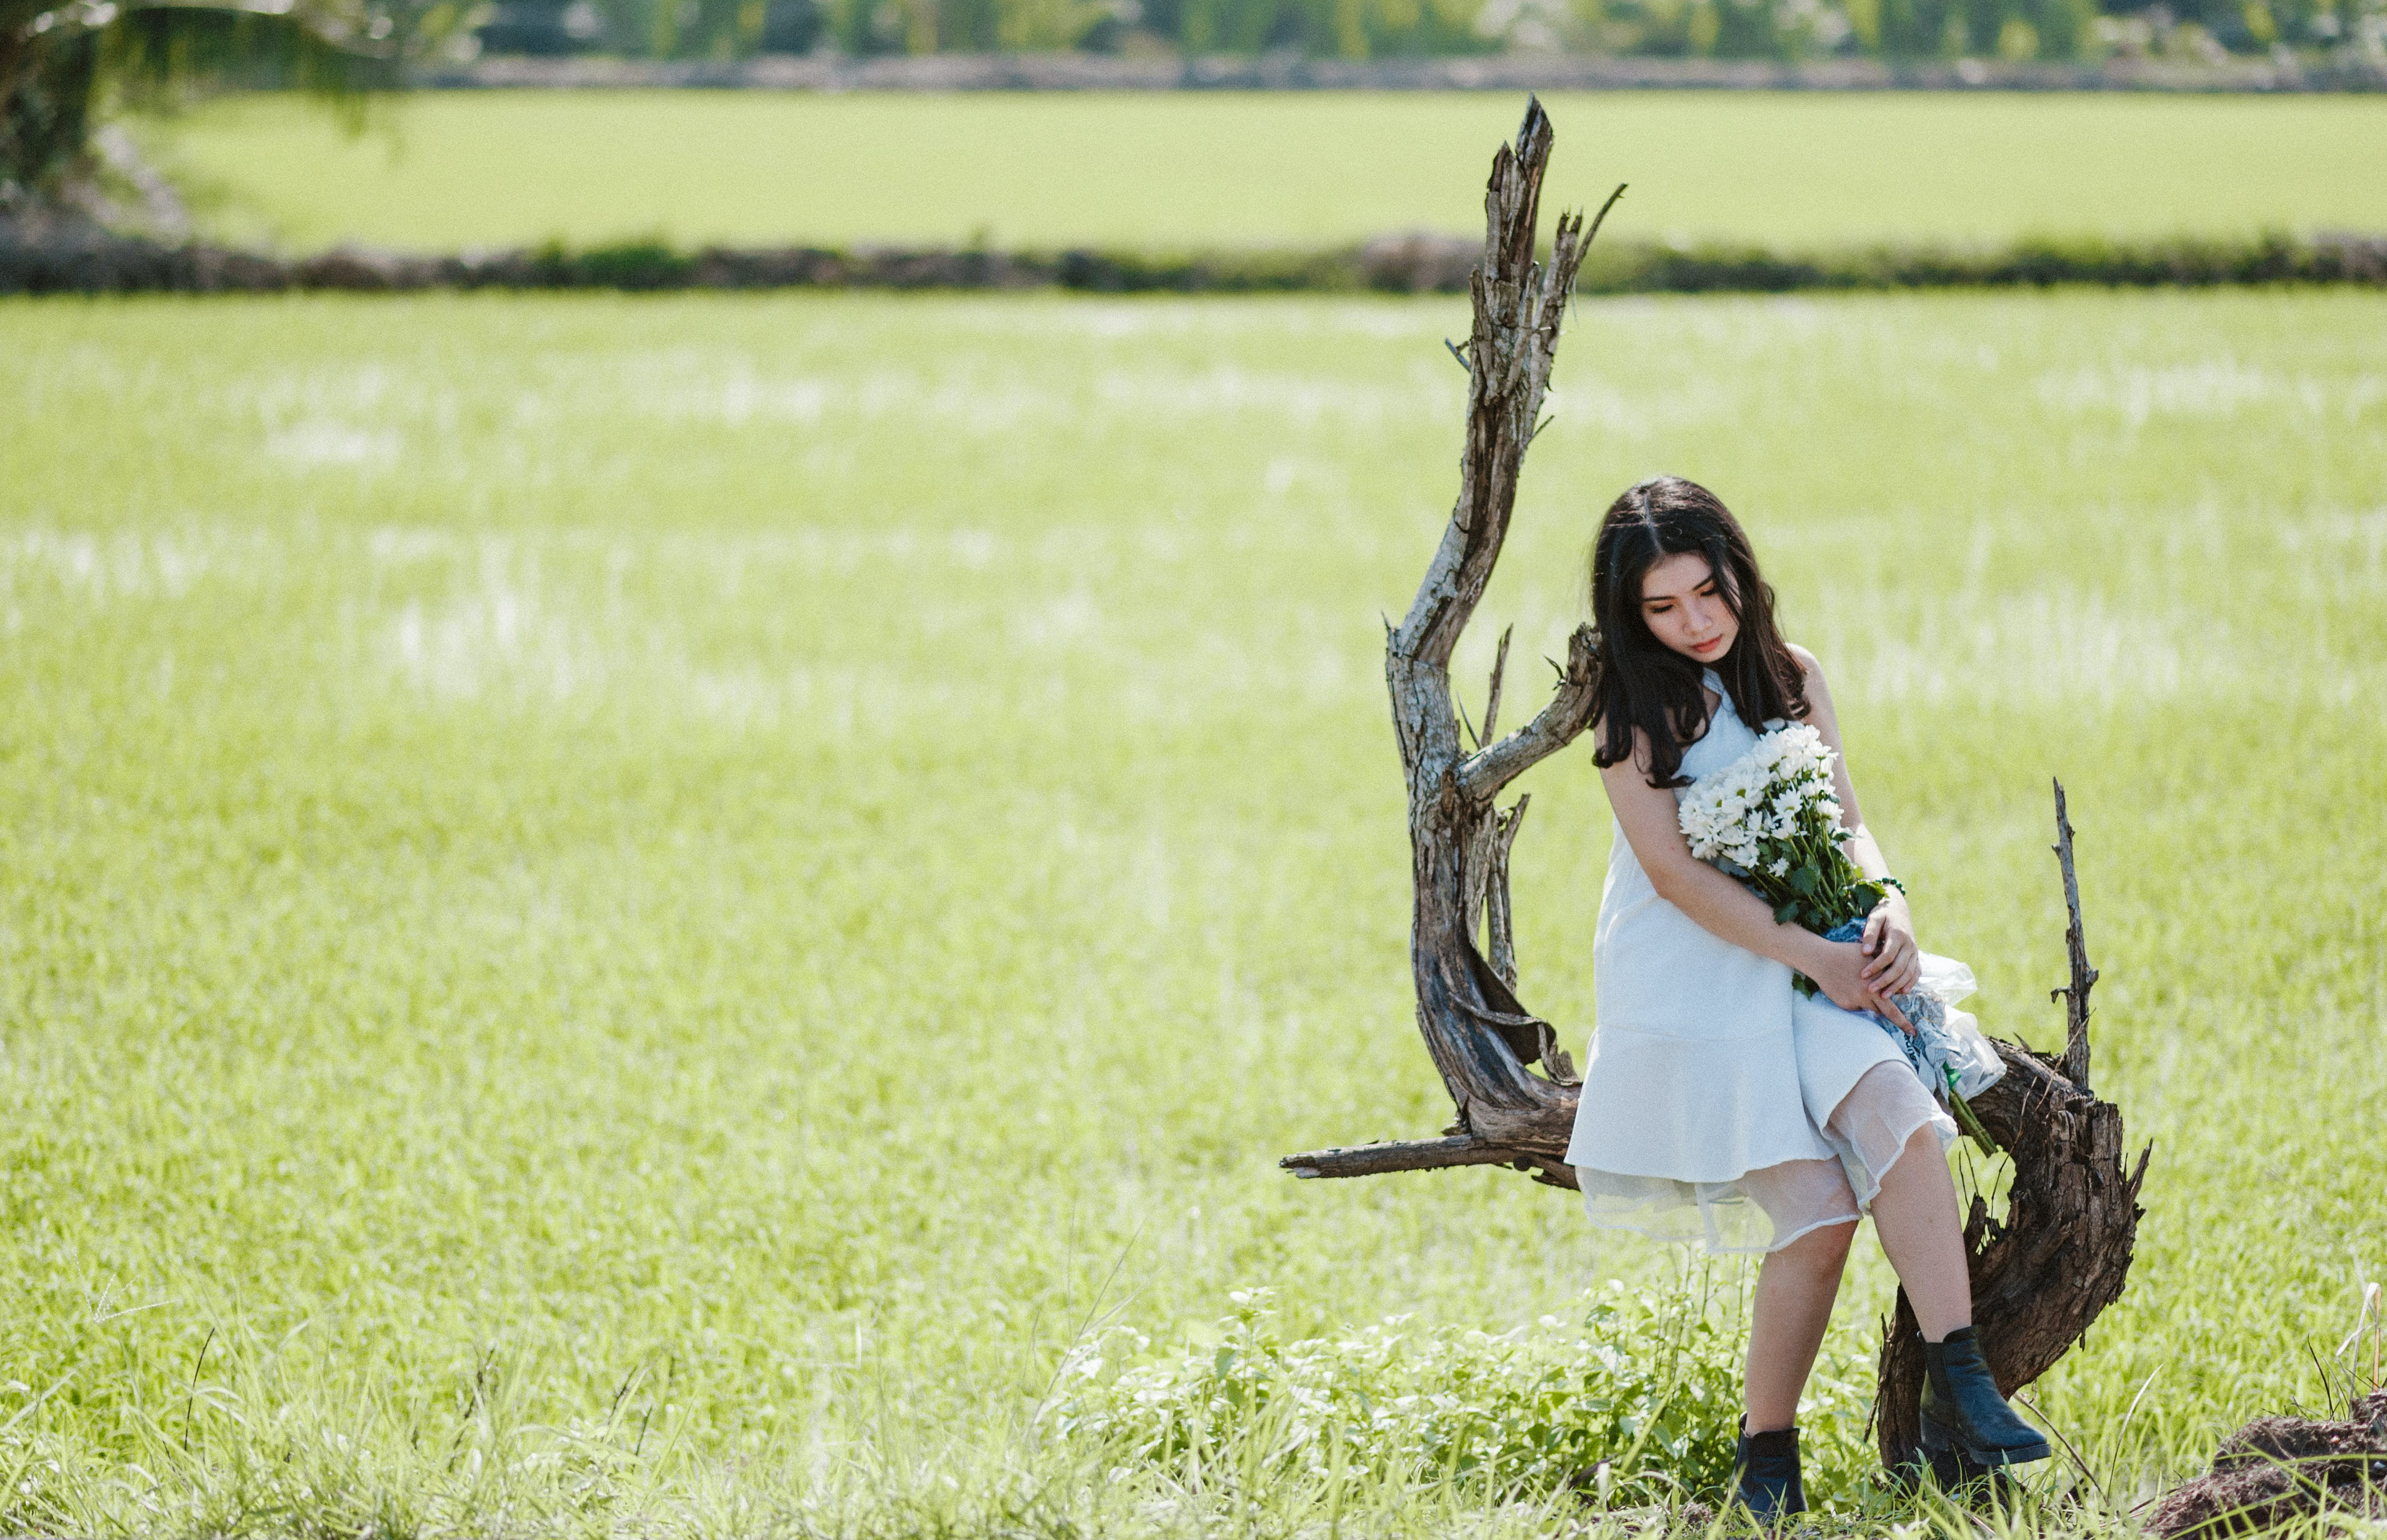 Woman Carrying White Flower Bouquet Sitting on Leafless Tree